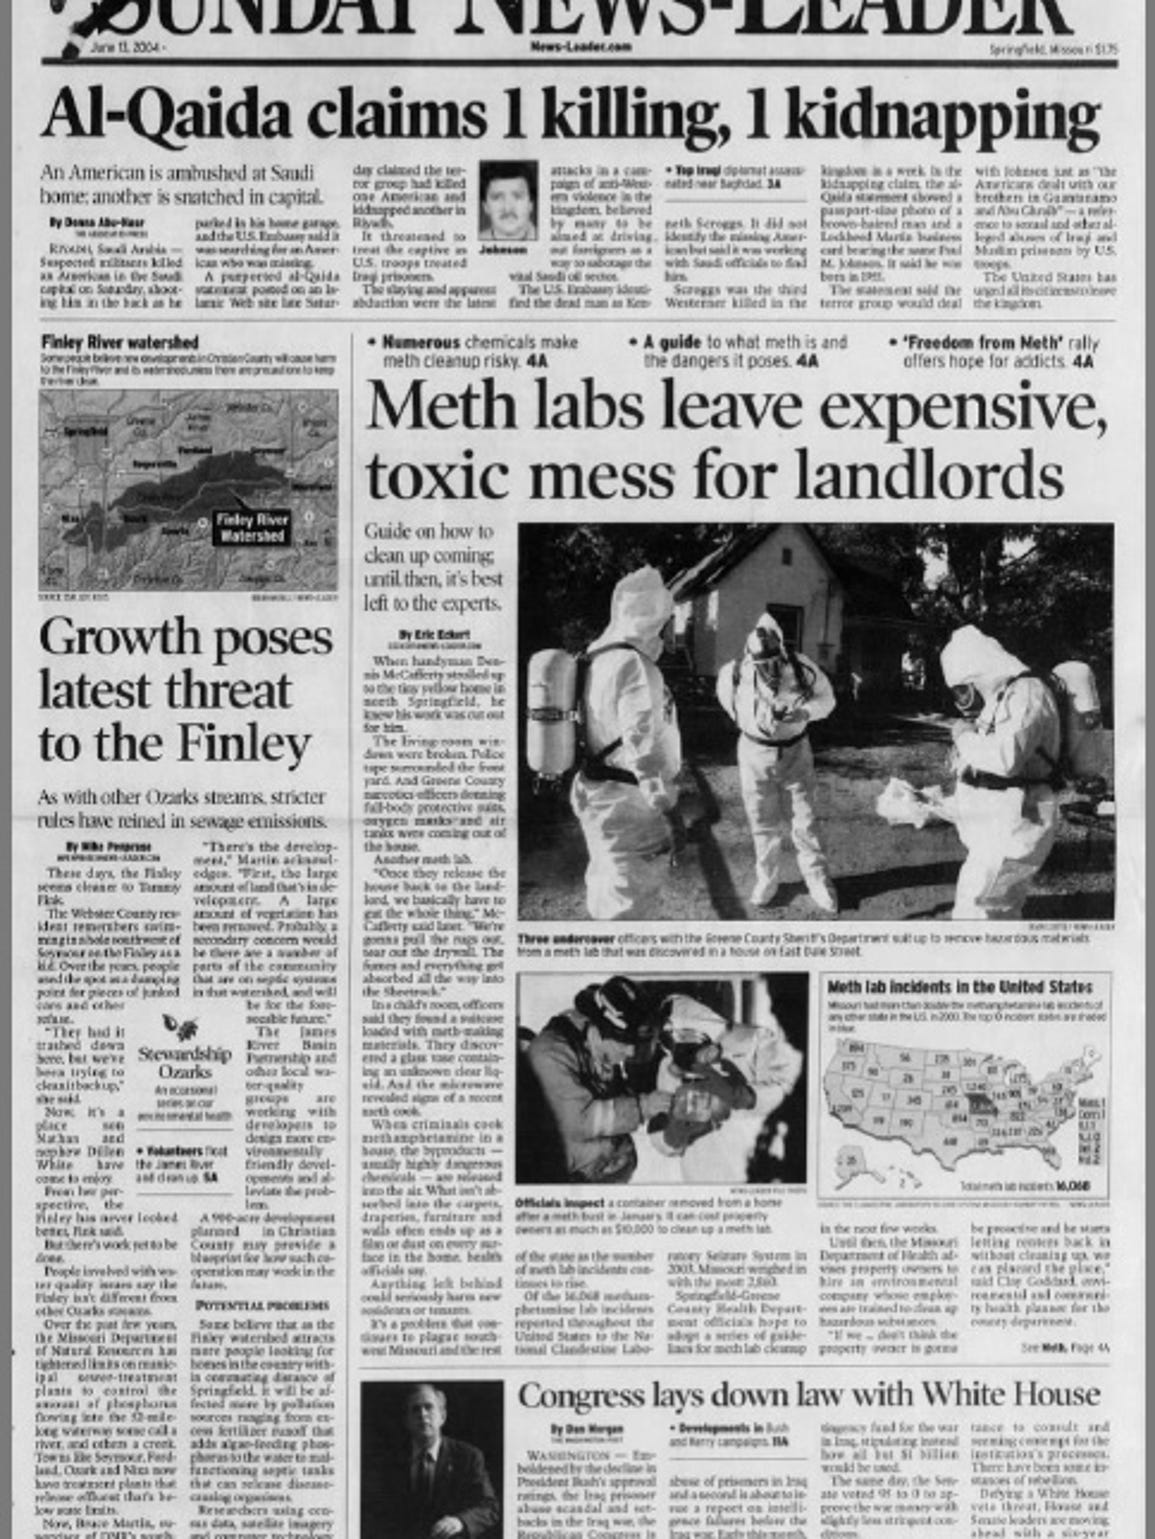 A 2004 News-Leader front page, featuring a story detailing